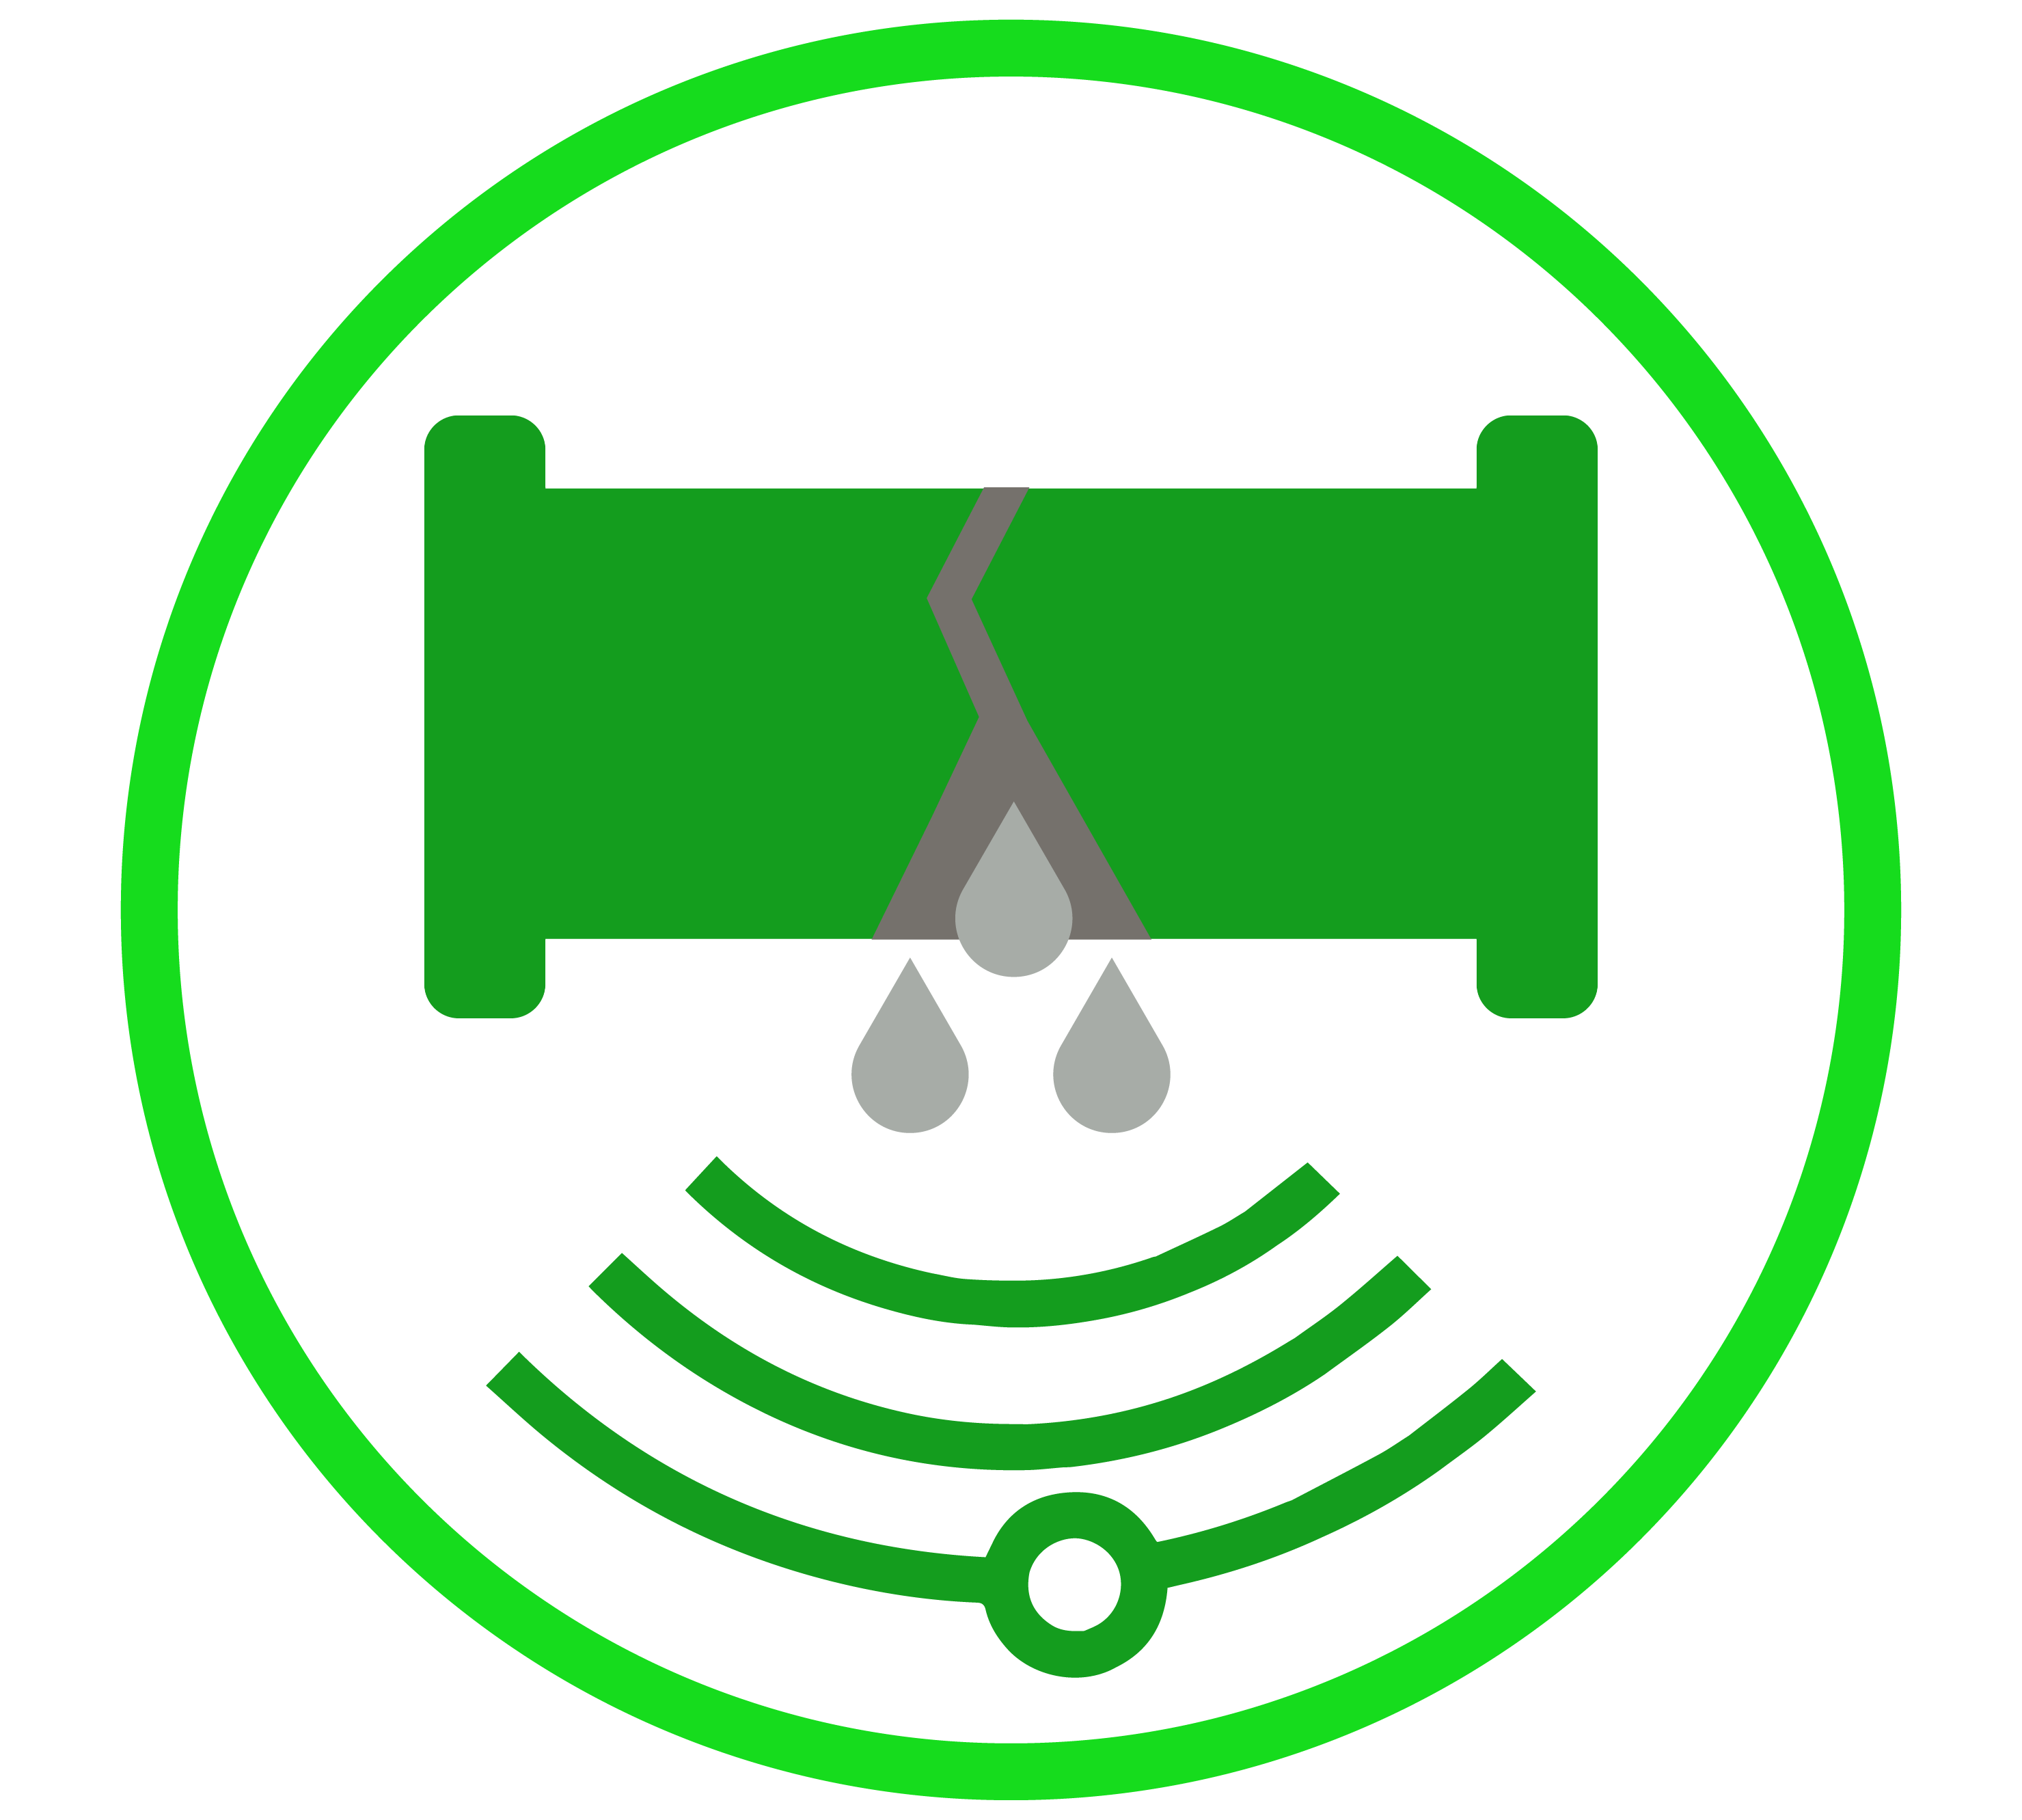 leak detection and fault in cable detection service icon